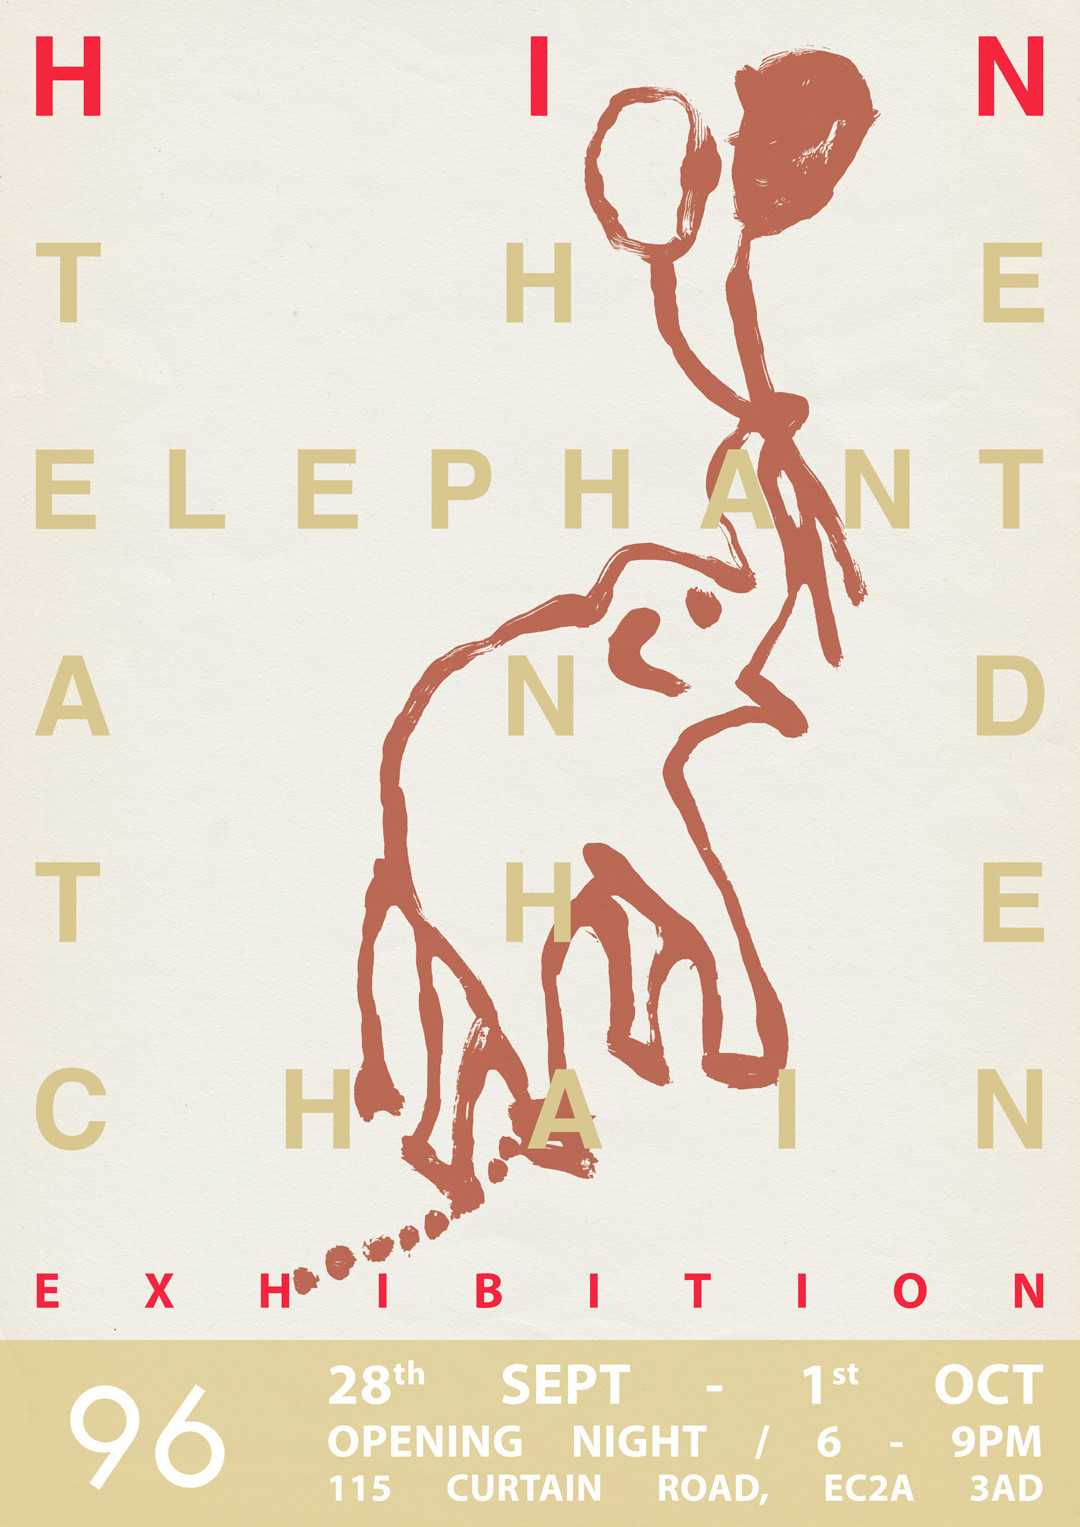 The Elephant and the Chain by HIN